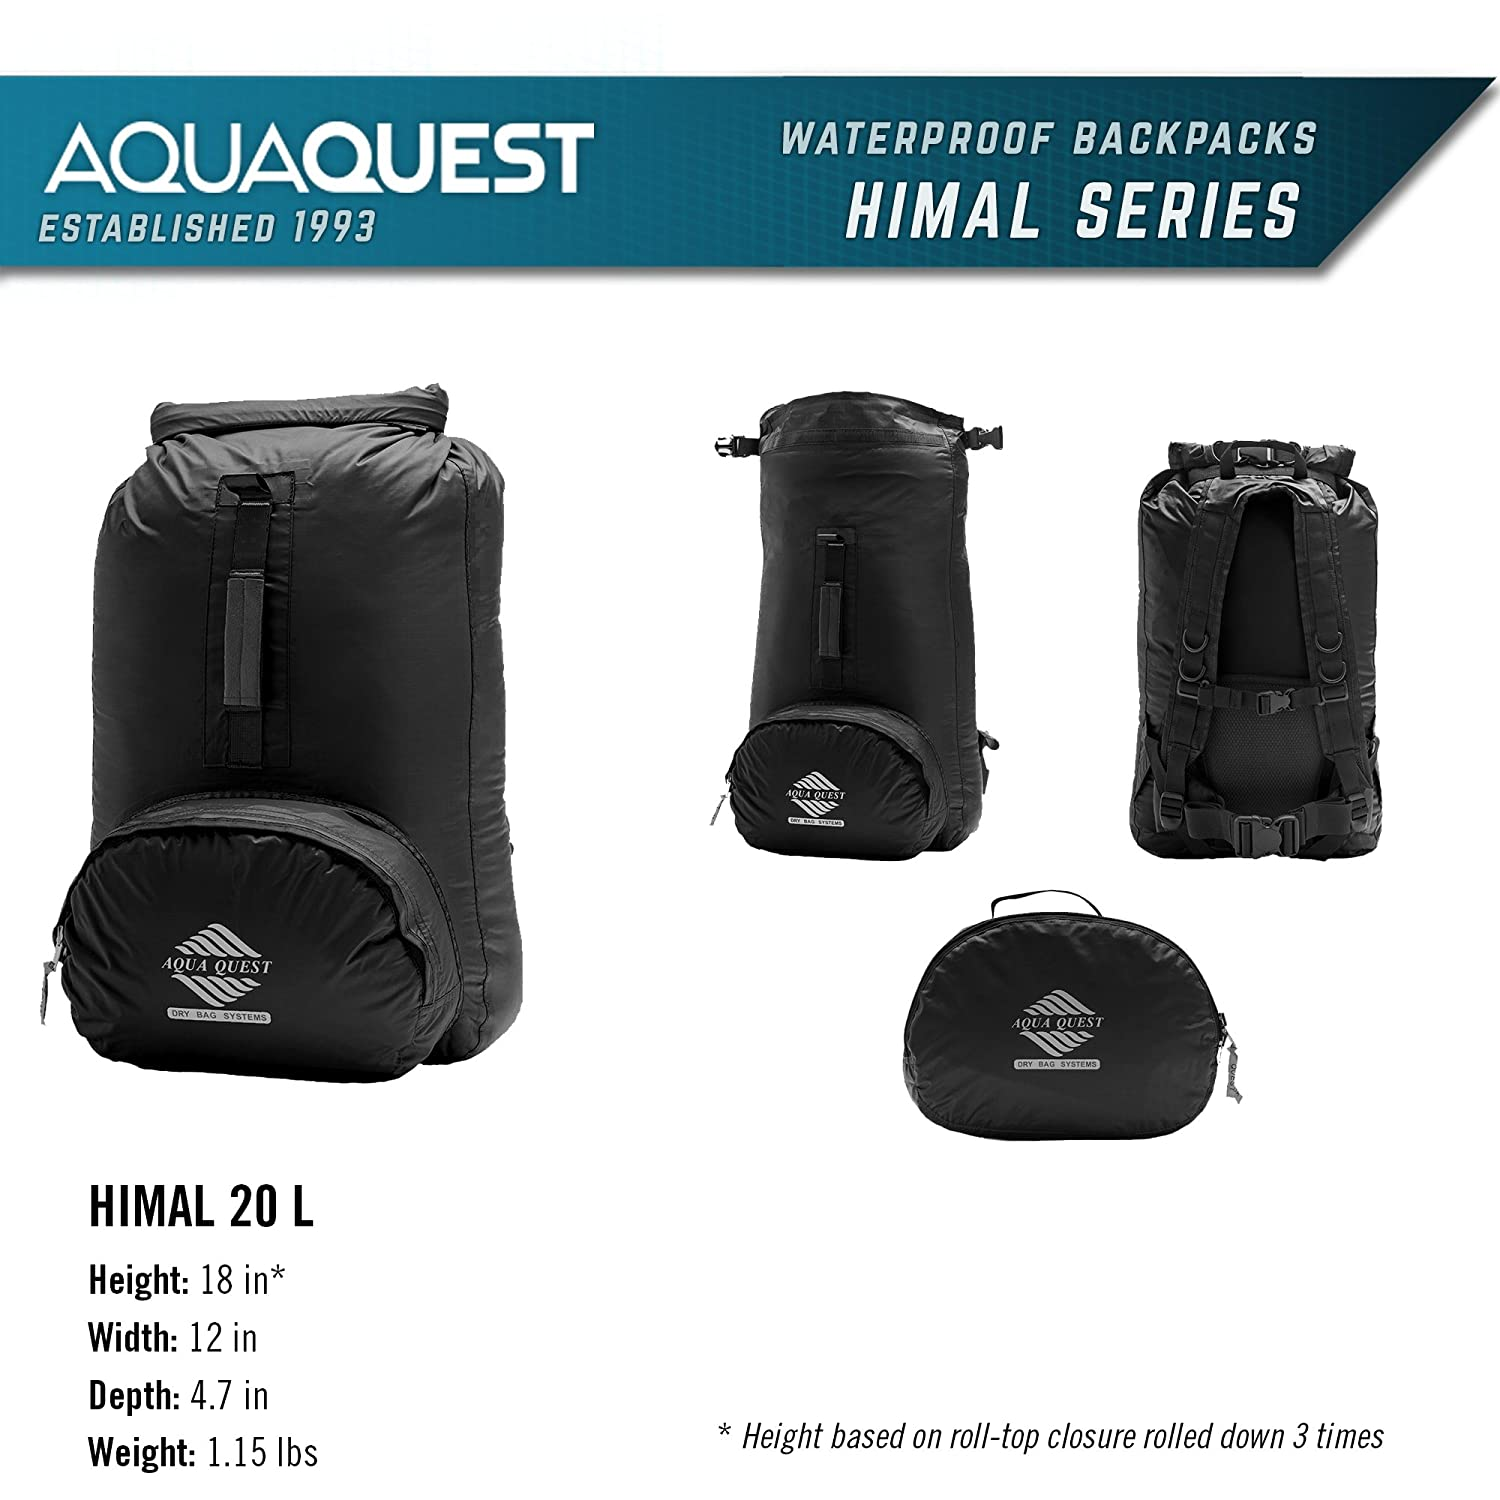 2d148f9aeb9f Amazon.com  Aqua Quest Himal Backpack - 100% Waterproof 25L Dry Bag -  Lightweight